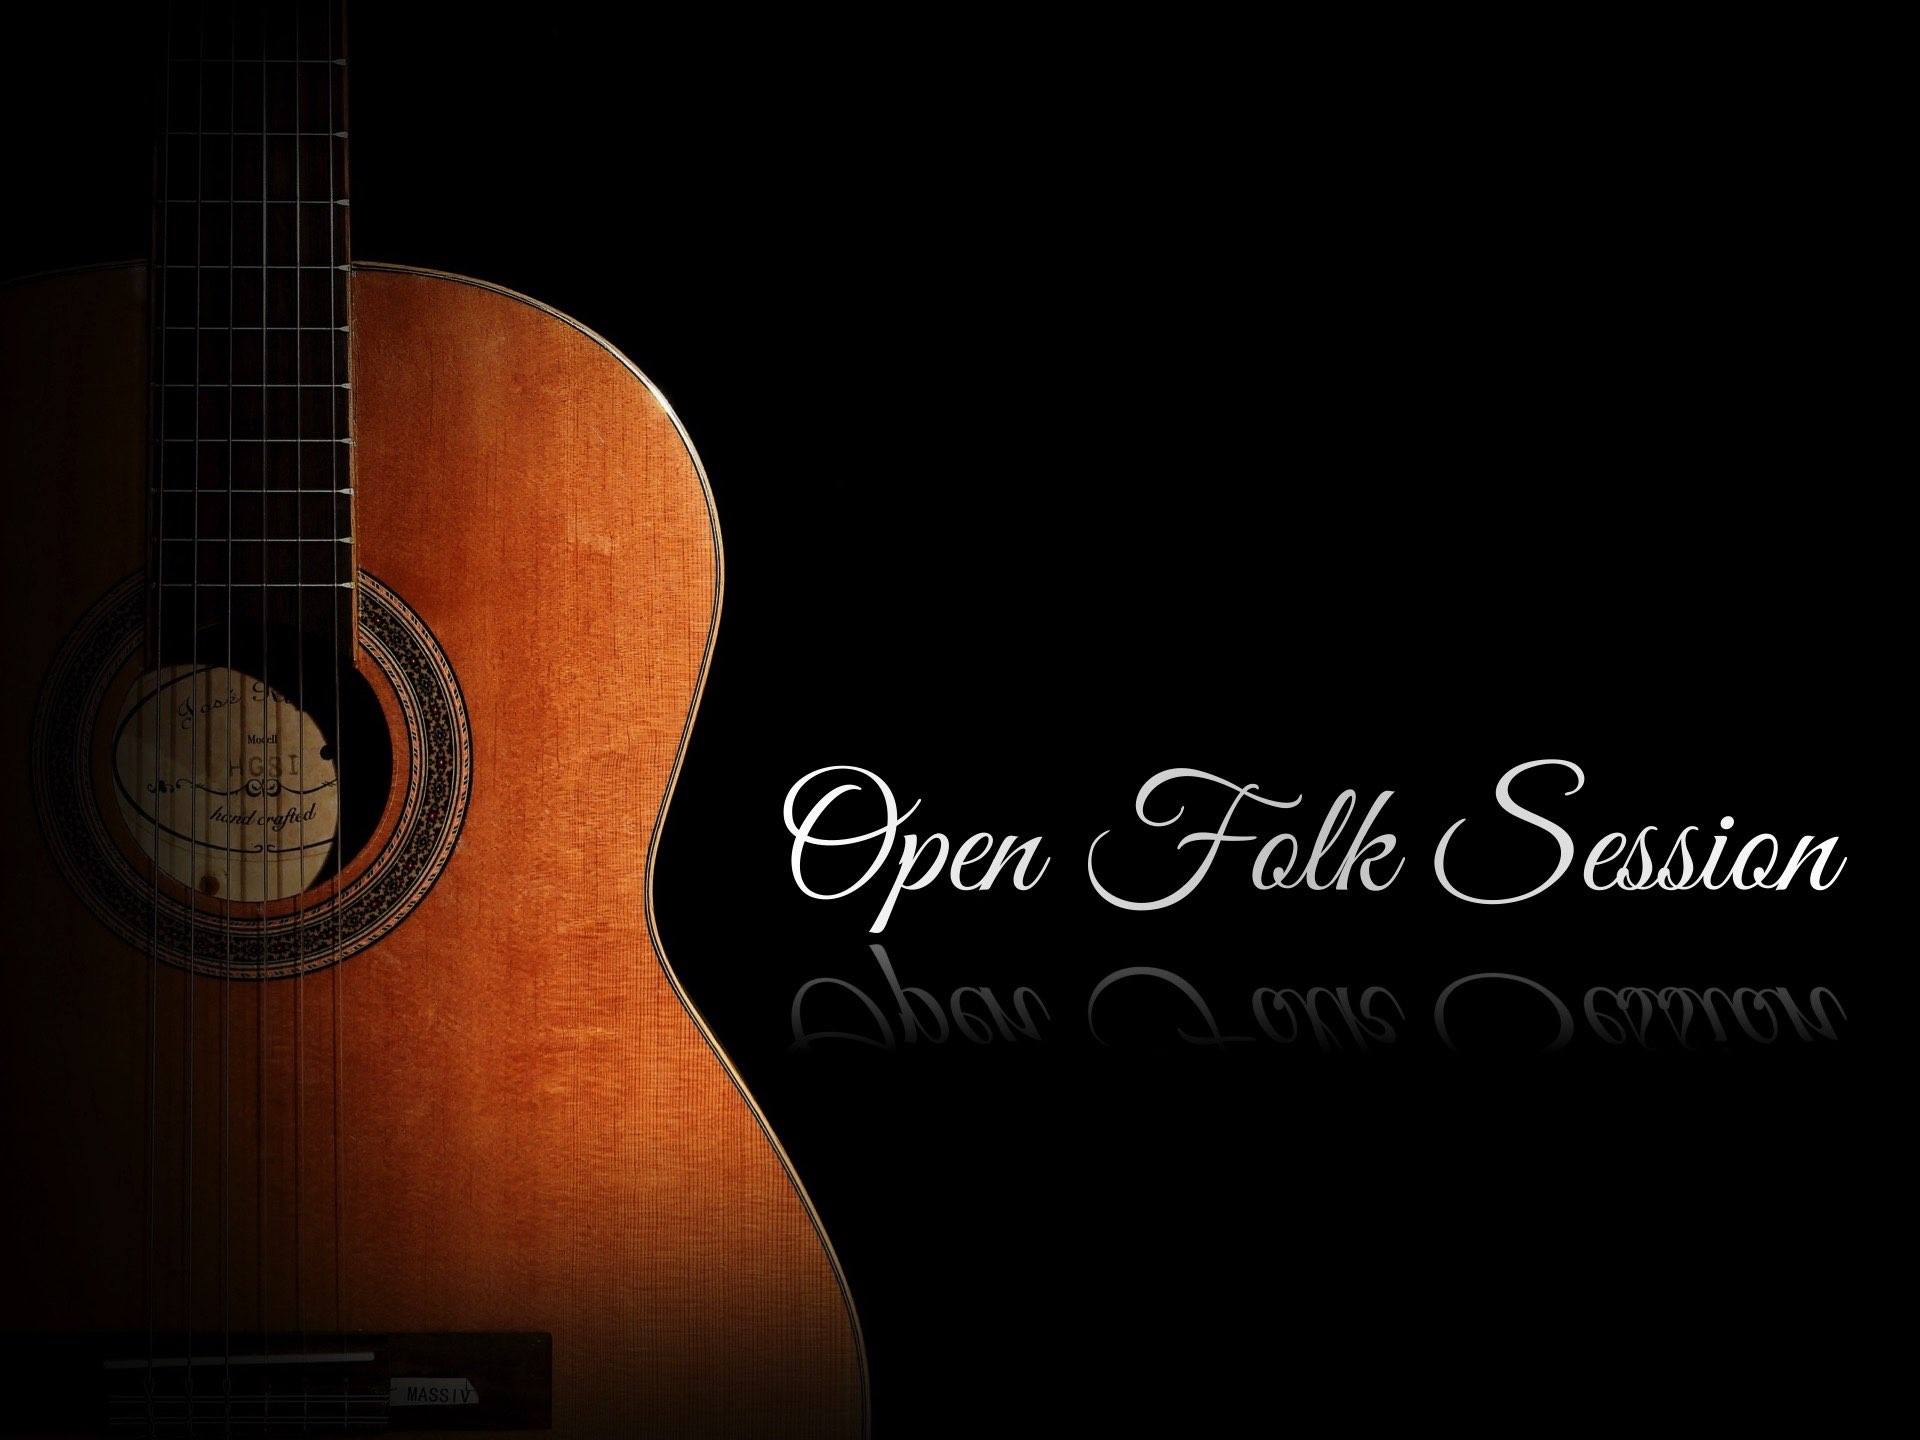 Open Folk Session - Trad Session